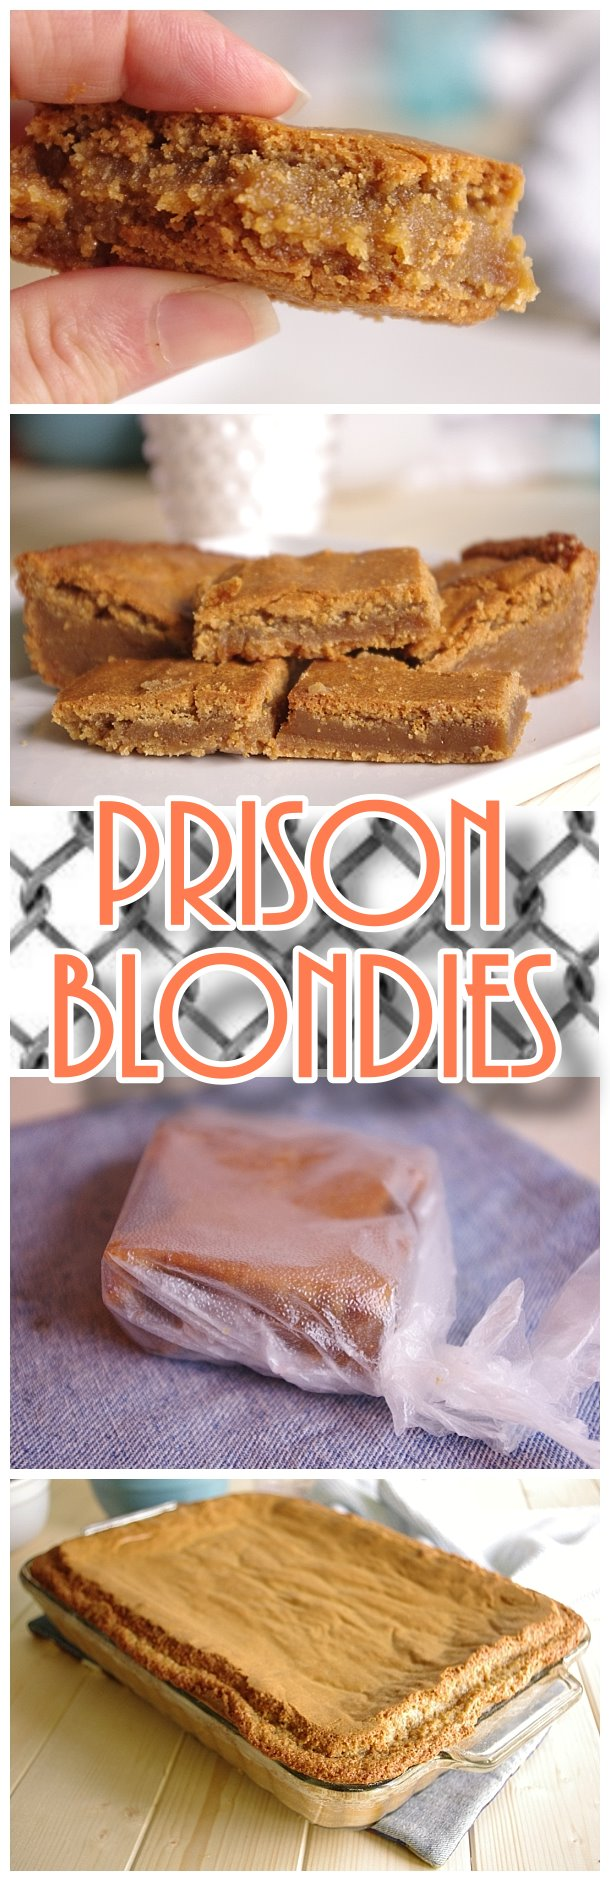 Prison Blondies Blonde Brownies Cookie Bars Dessert Recipe - SO worth a felony - but really - how about just make them at [8239835]